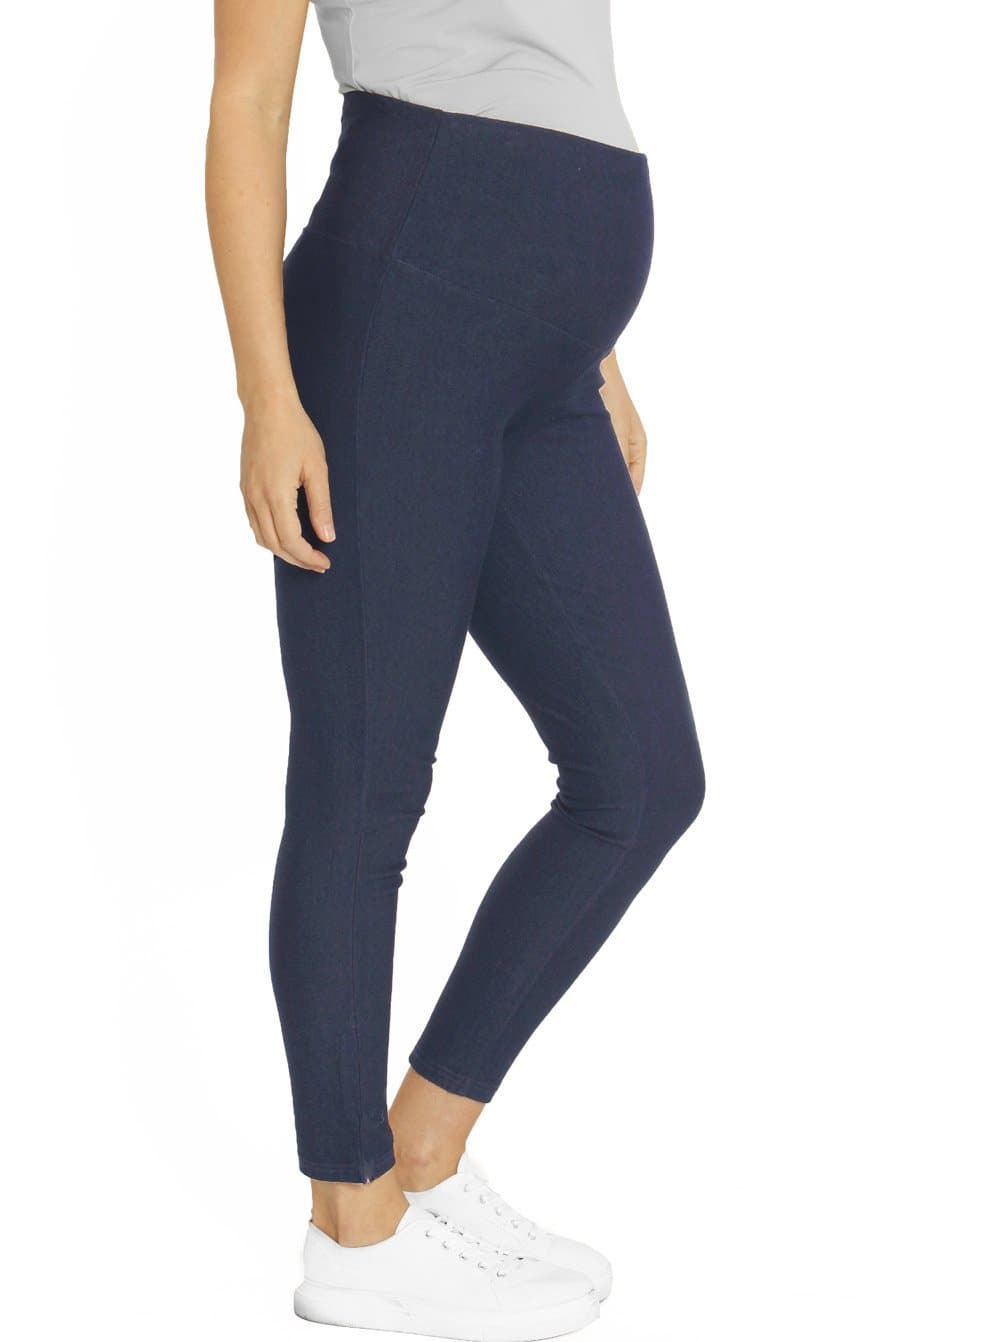 Maternity Deluxe High Waisted Jegging - Denim